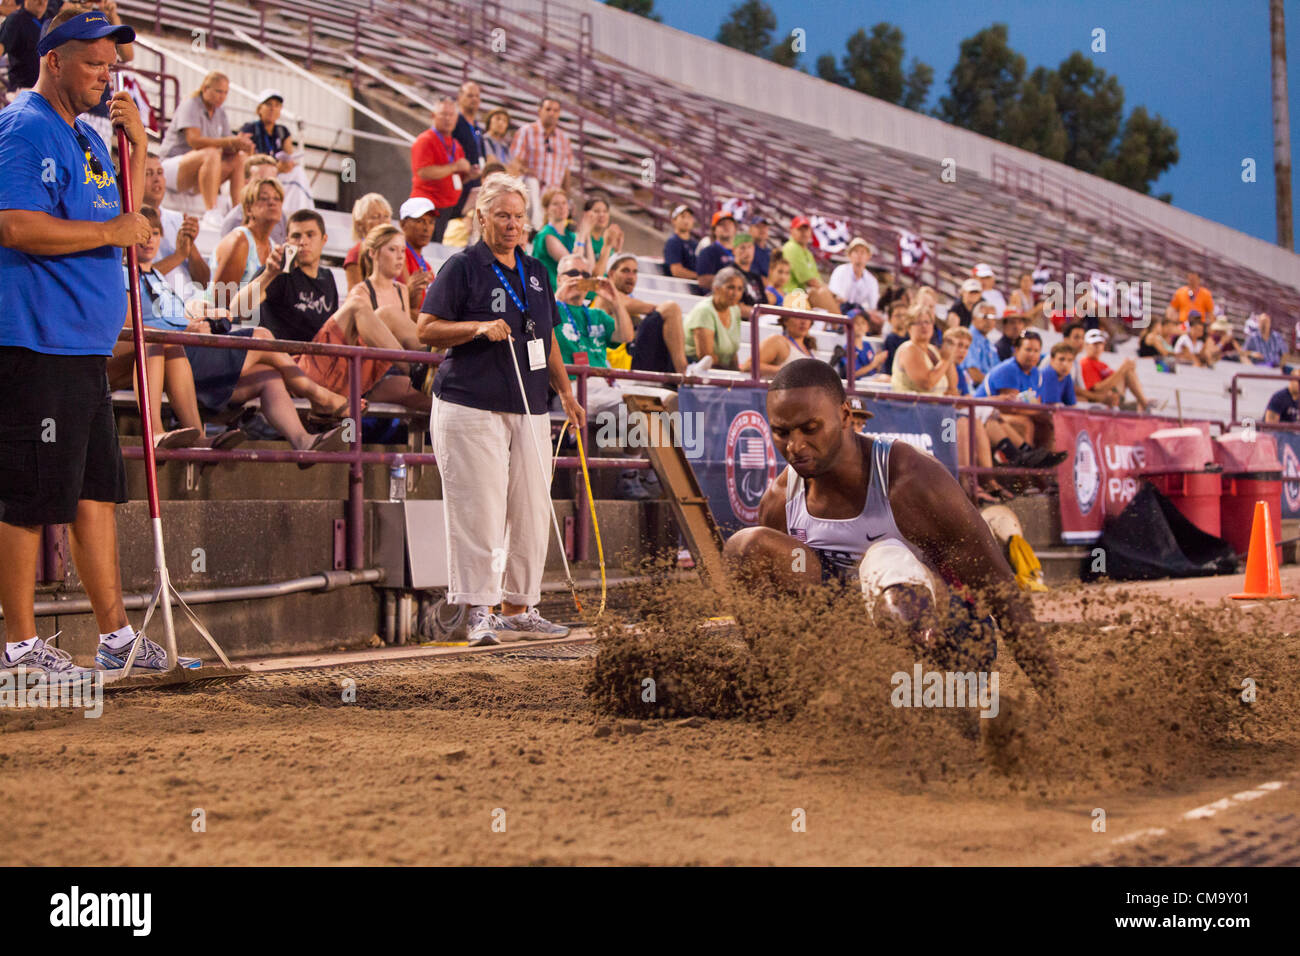 Indianapolis, IN, USA, 30 June 2012.  Hurie Johnson, a single-leg amputee, completes a long jump at the U.S. Paralympic - Stock Image